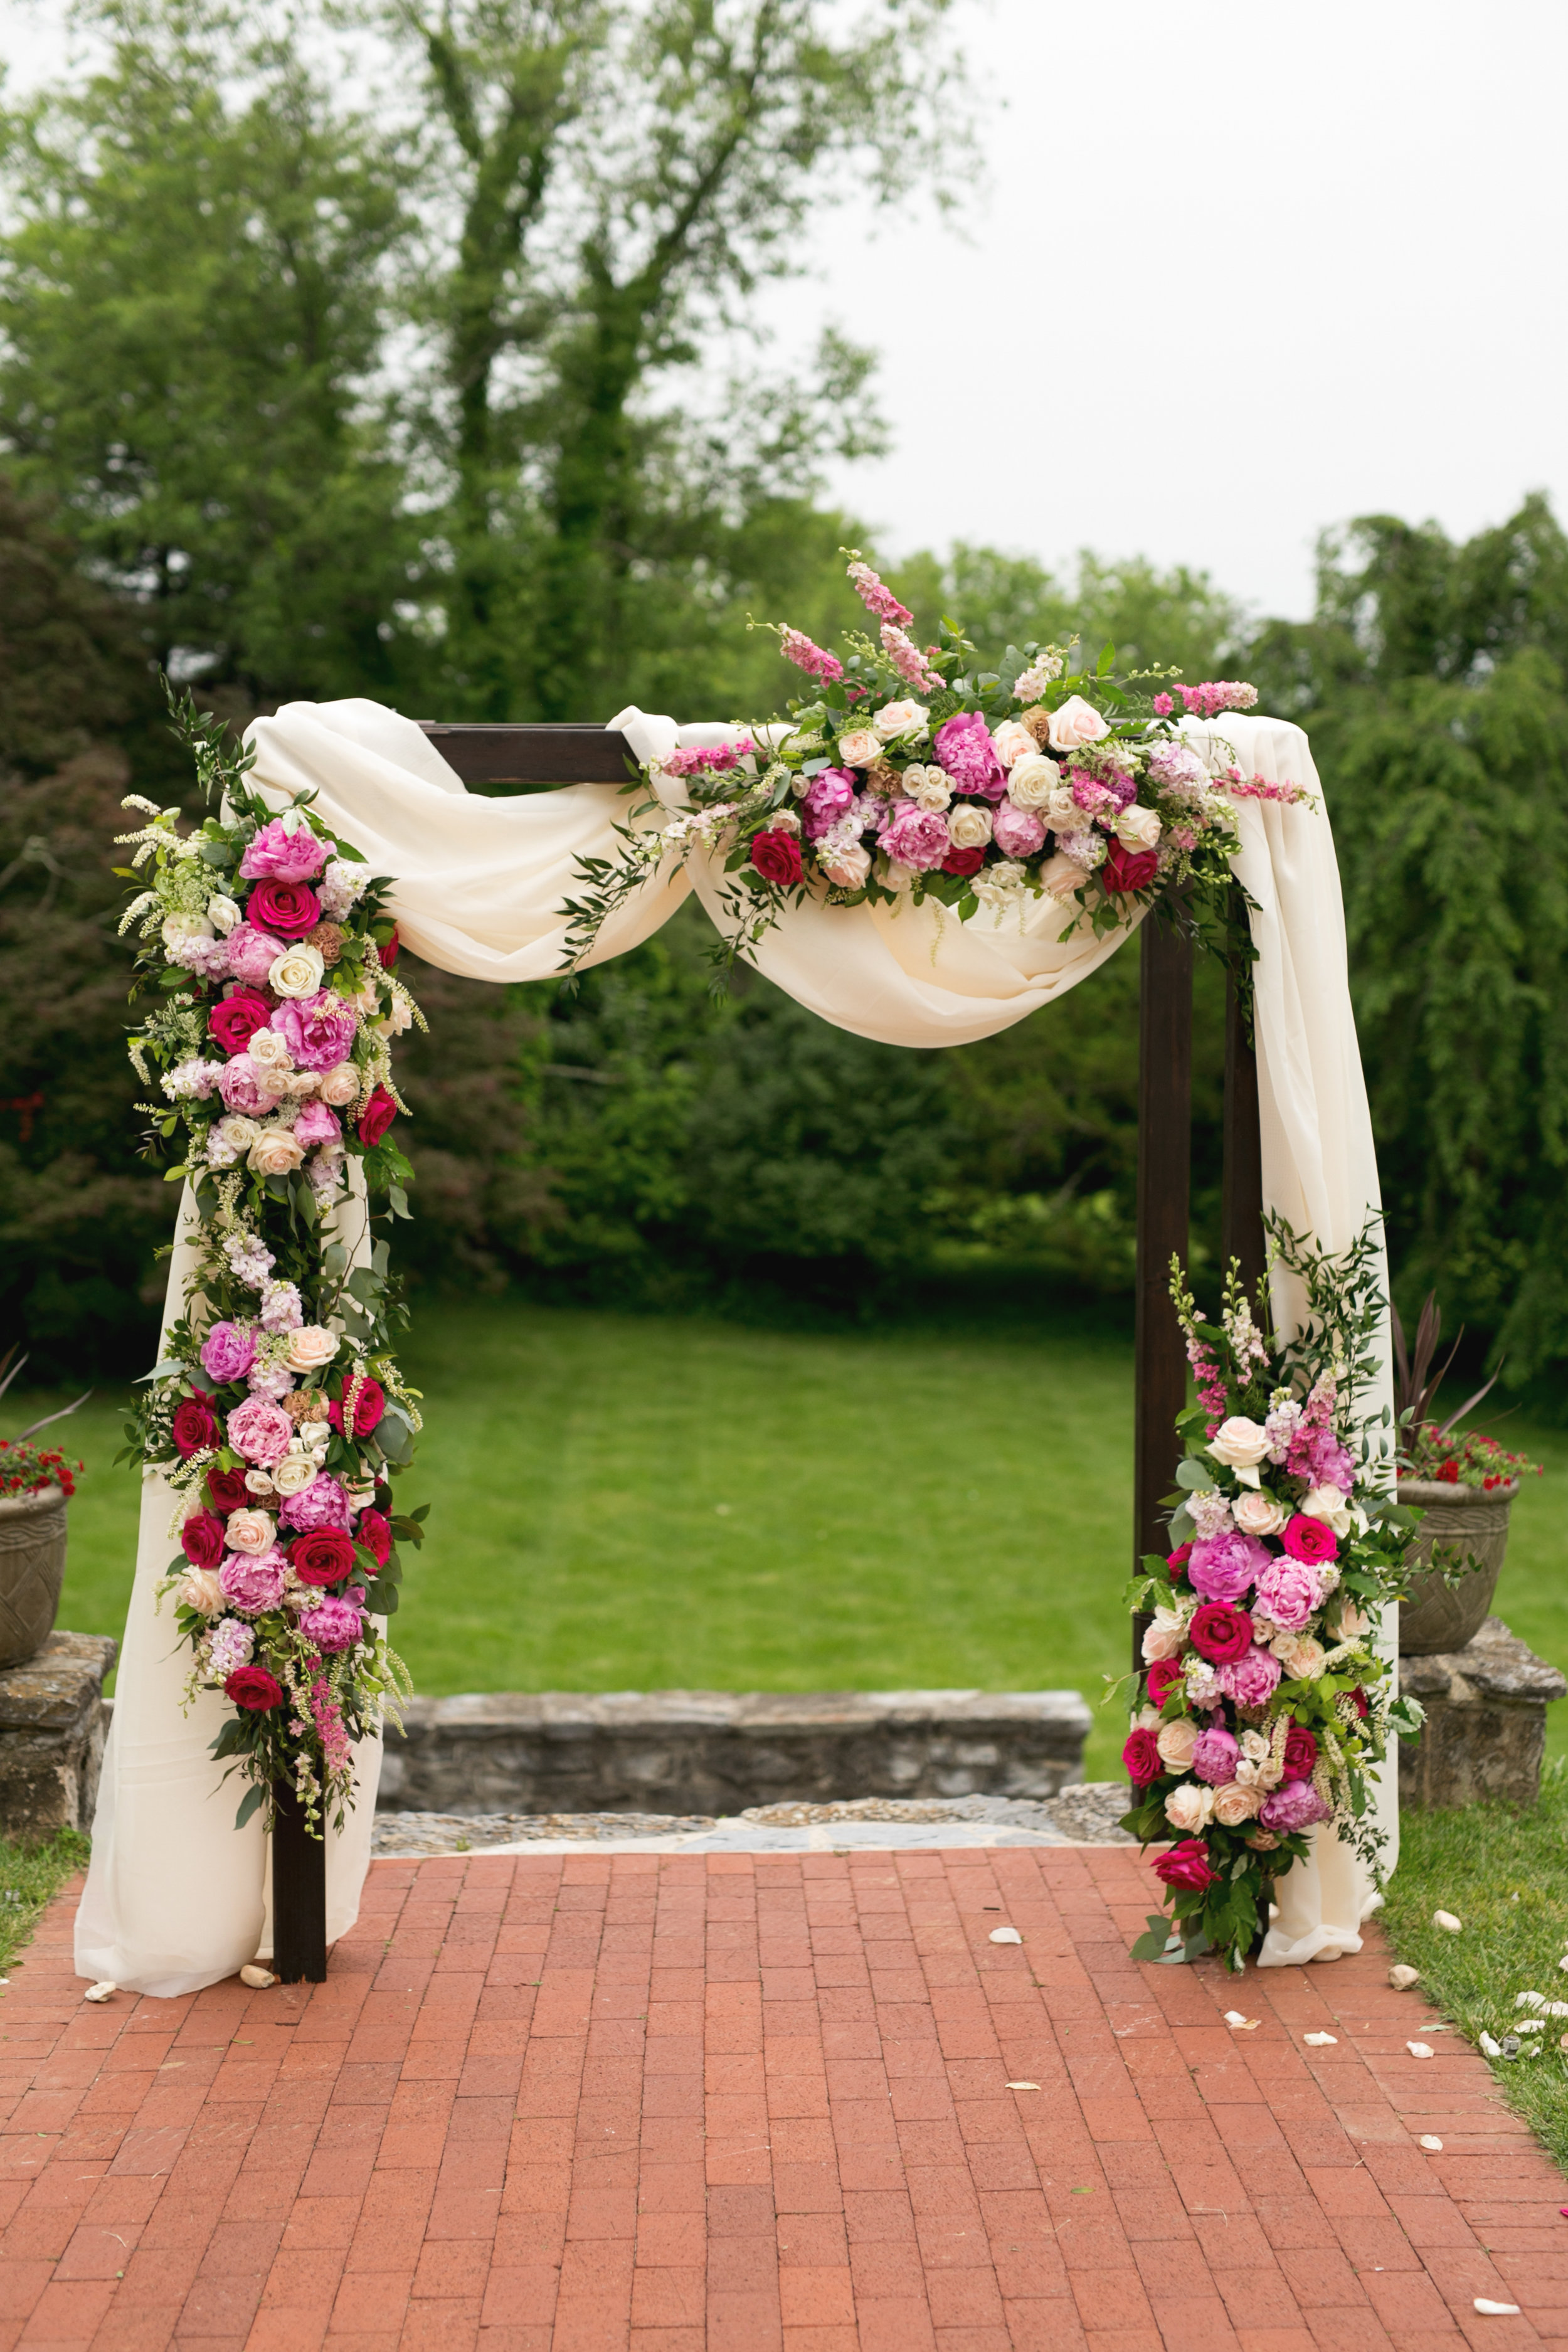 Wedding arch with lush pink flowers and draping by Lark Floral at Rosemont Manor in Berryville, VA